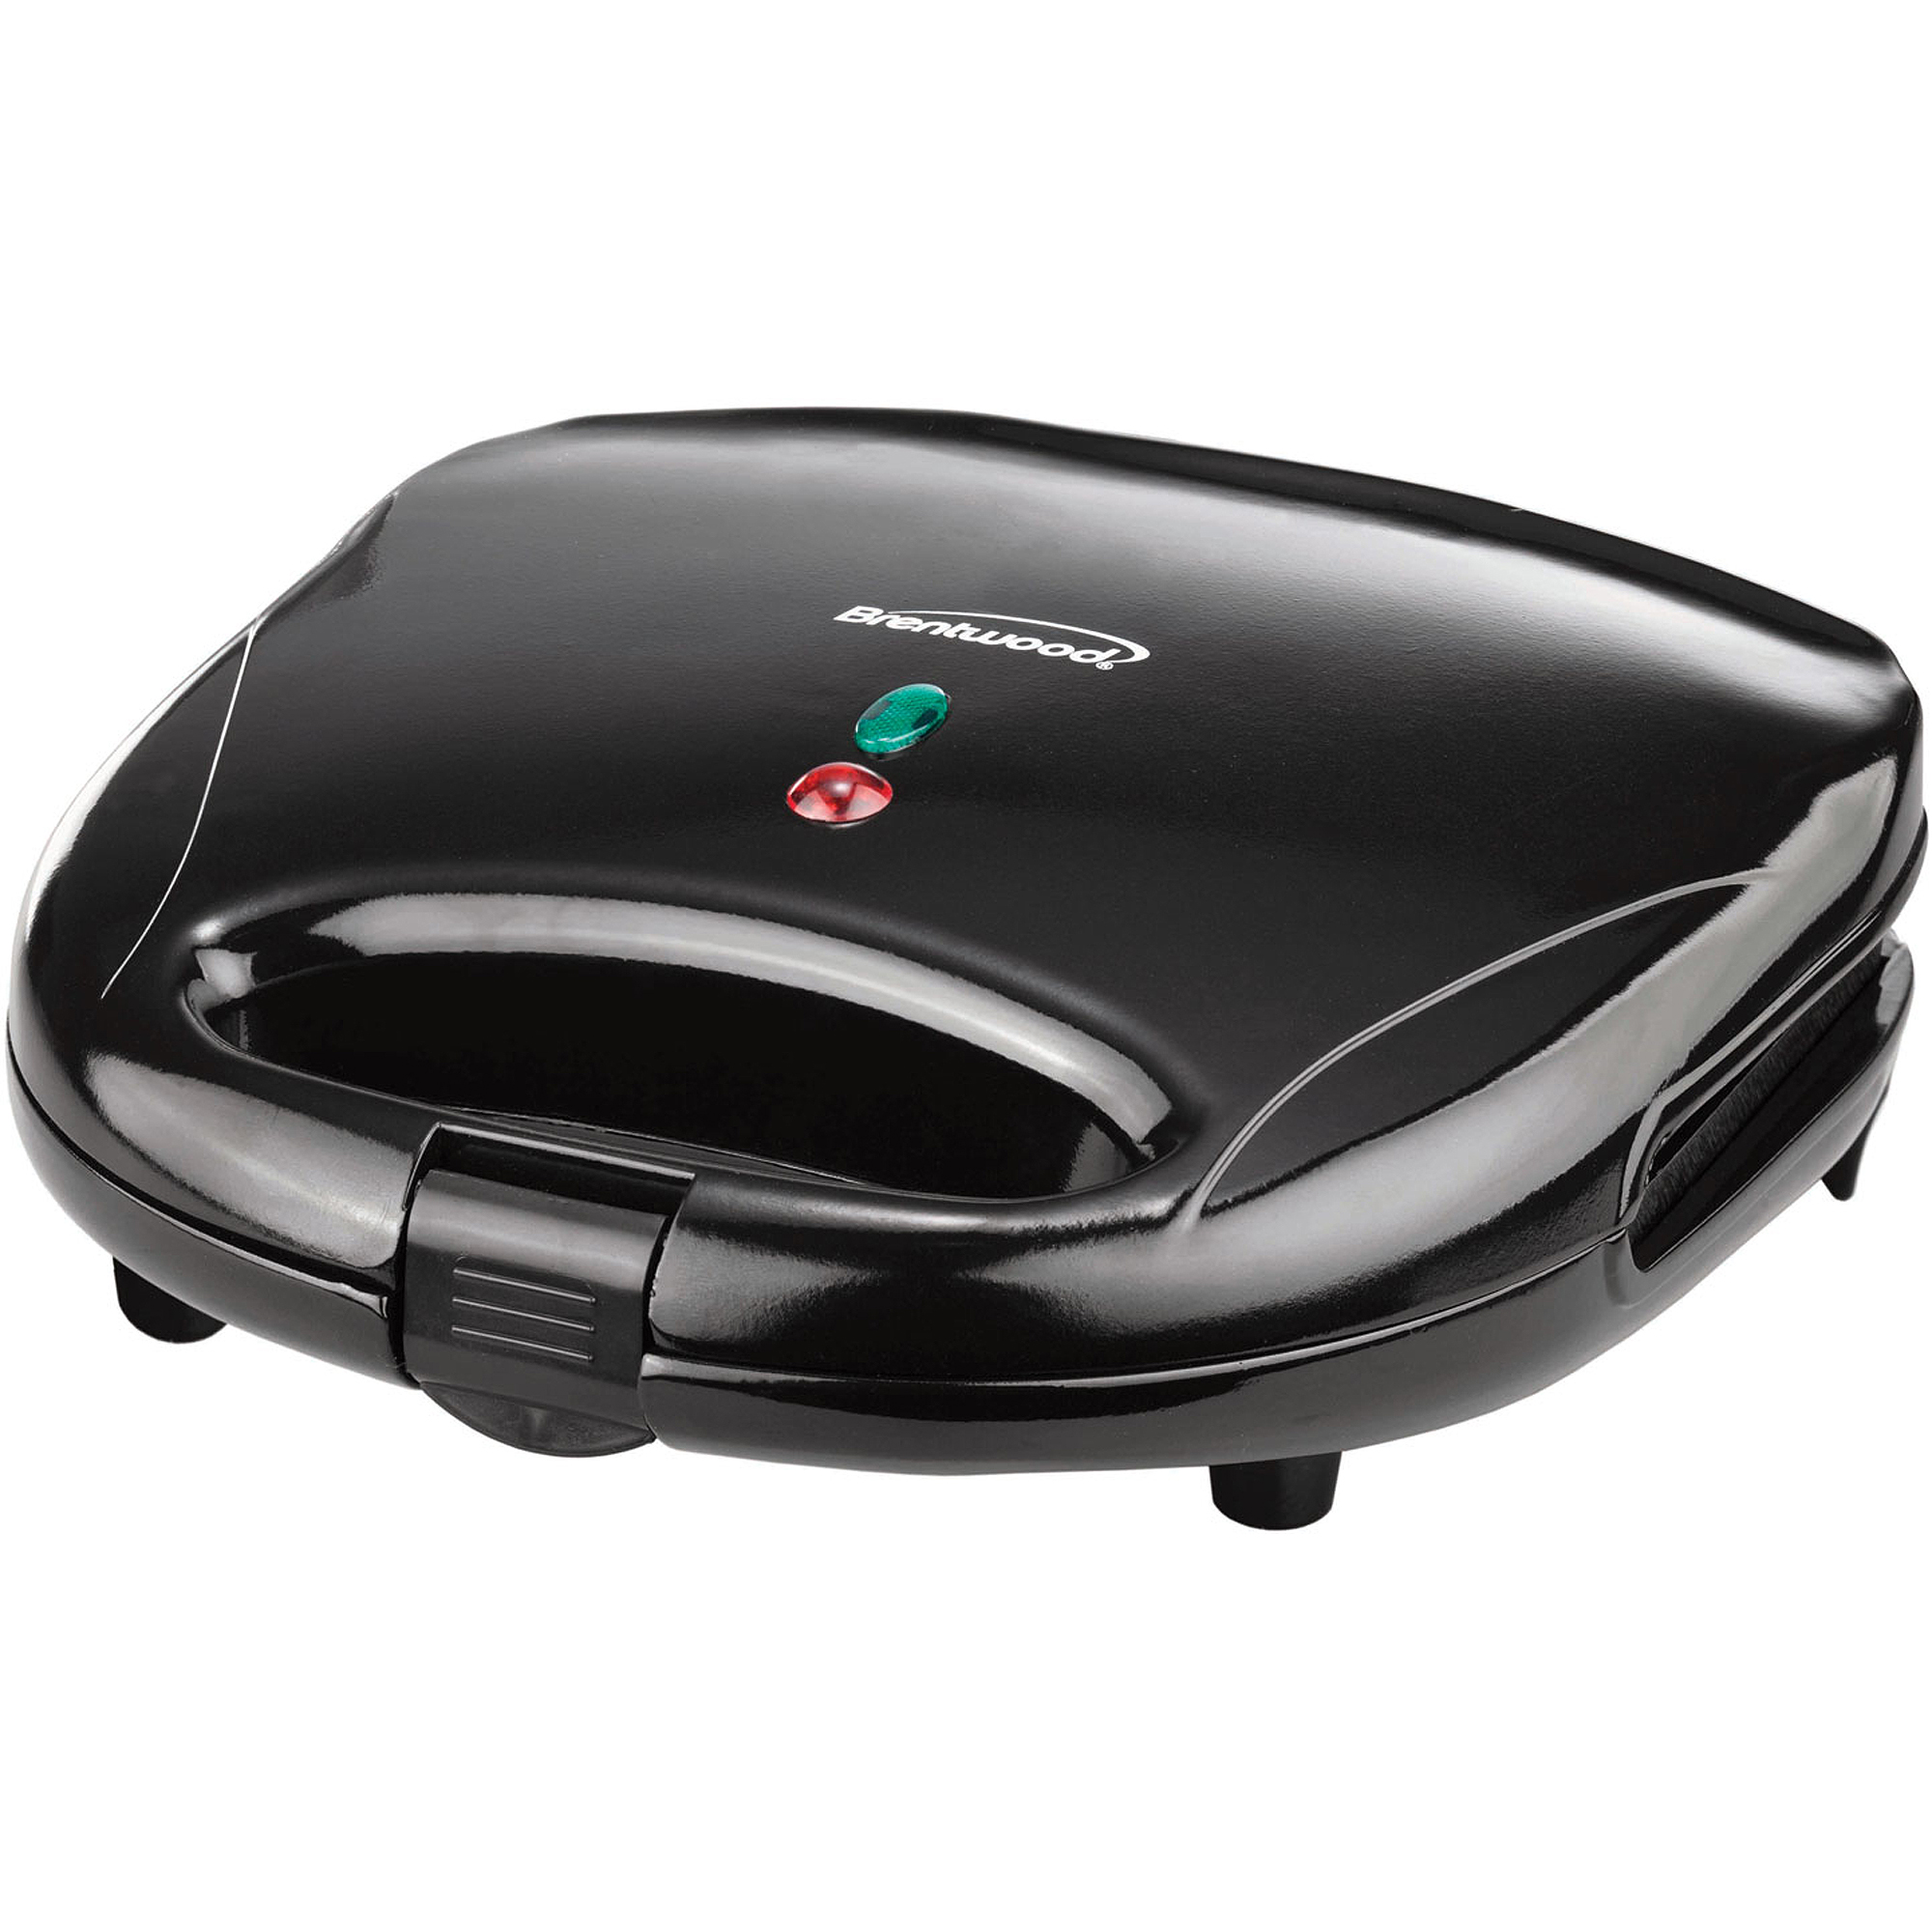 Brentwood TS-240B Black and Stainless Steal Sandwich Maker